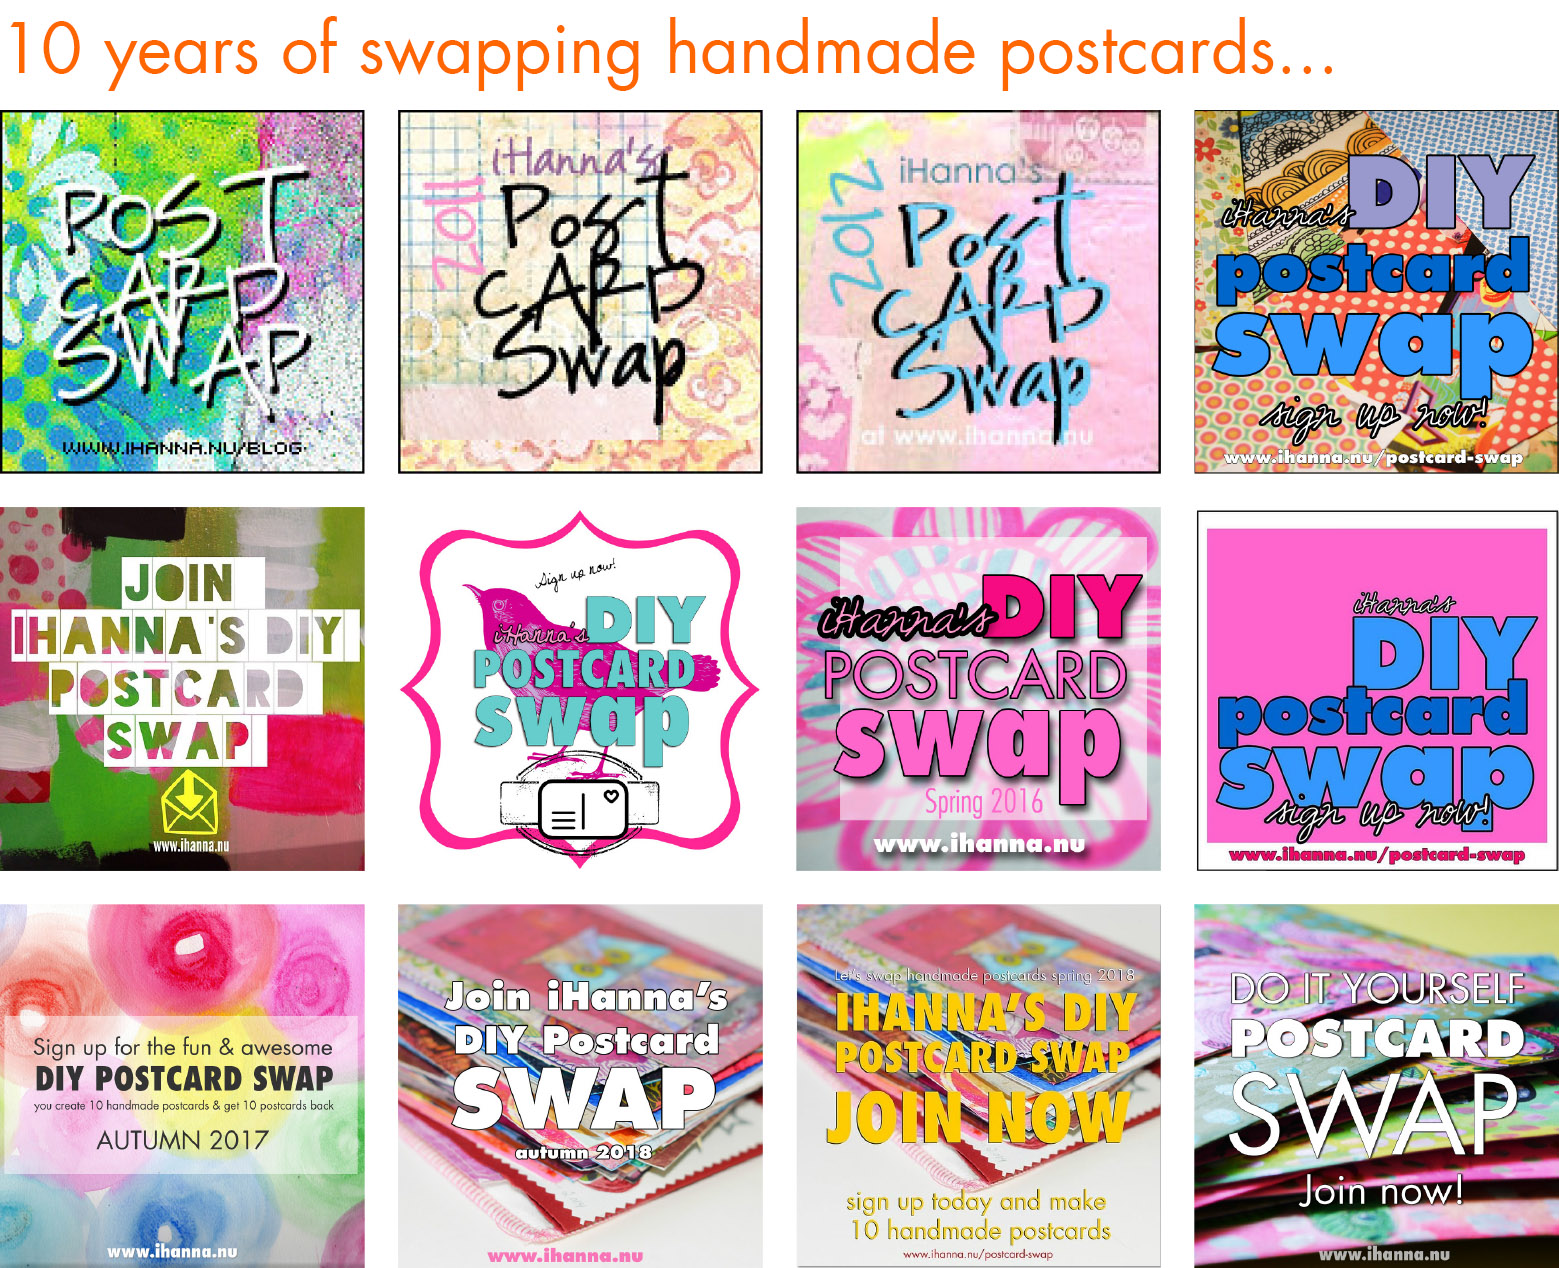 10 years anniversary of the DIY Postcard Swap #diyPostcardSwap